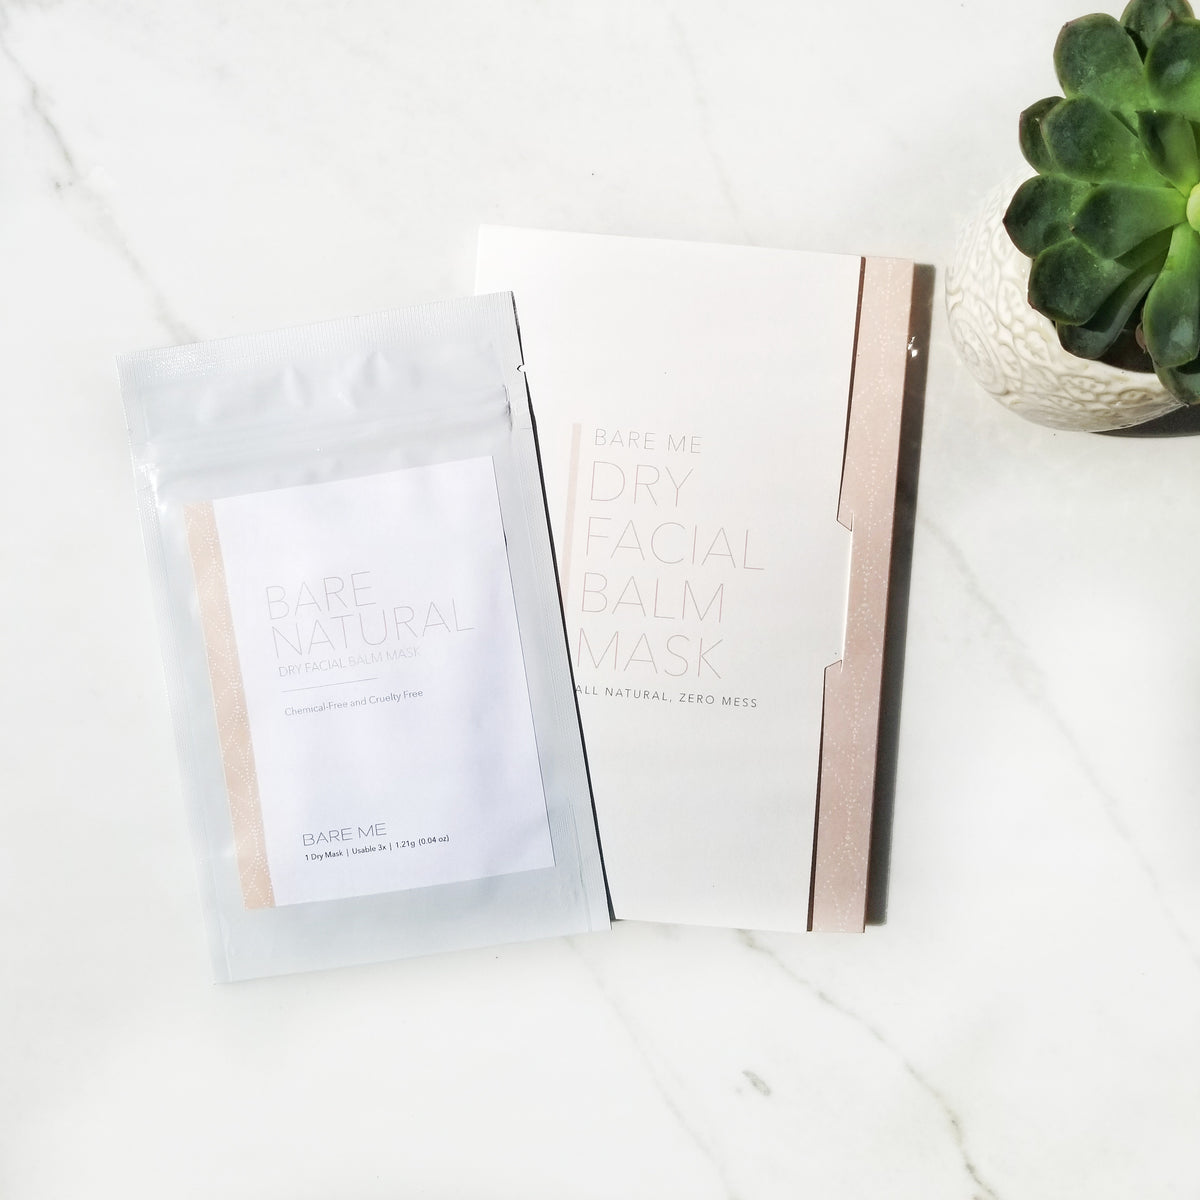 Bare Me Dry Sheet Face Mask